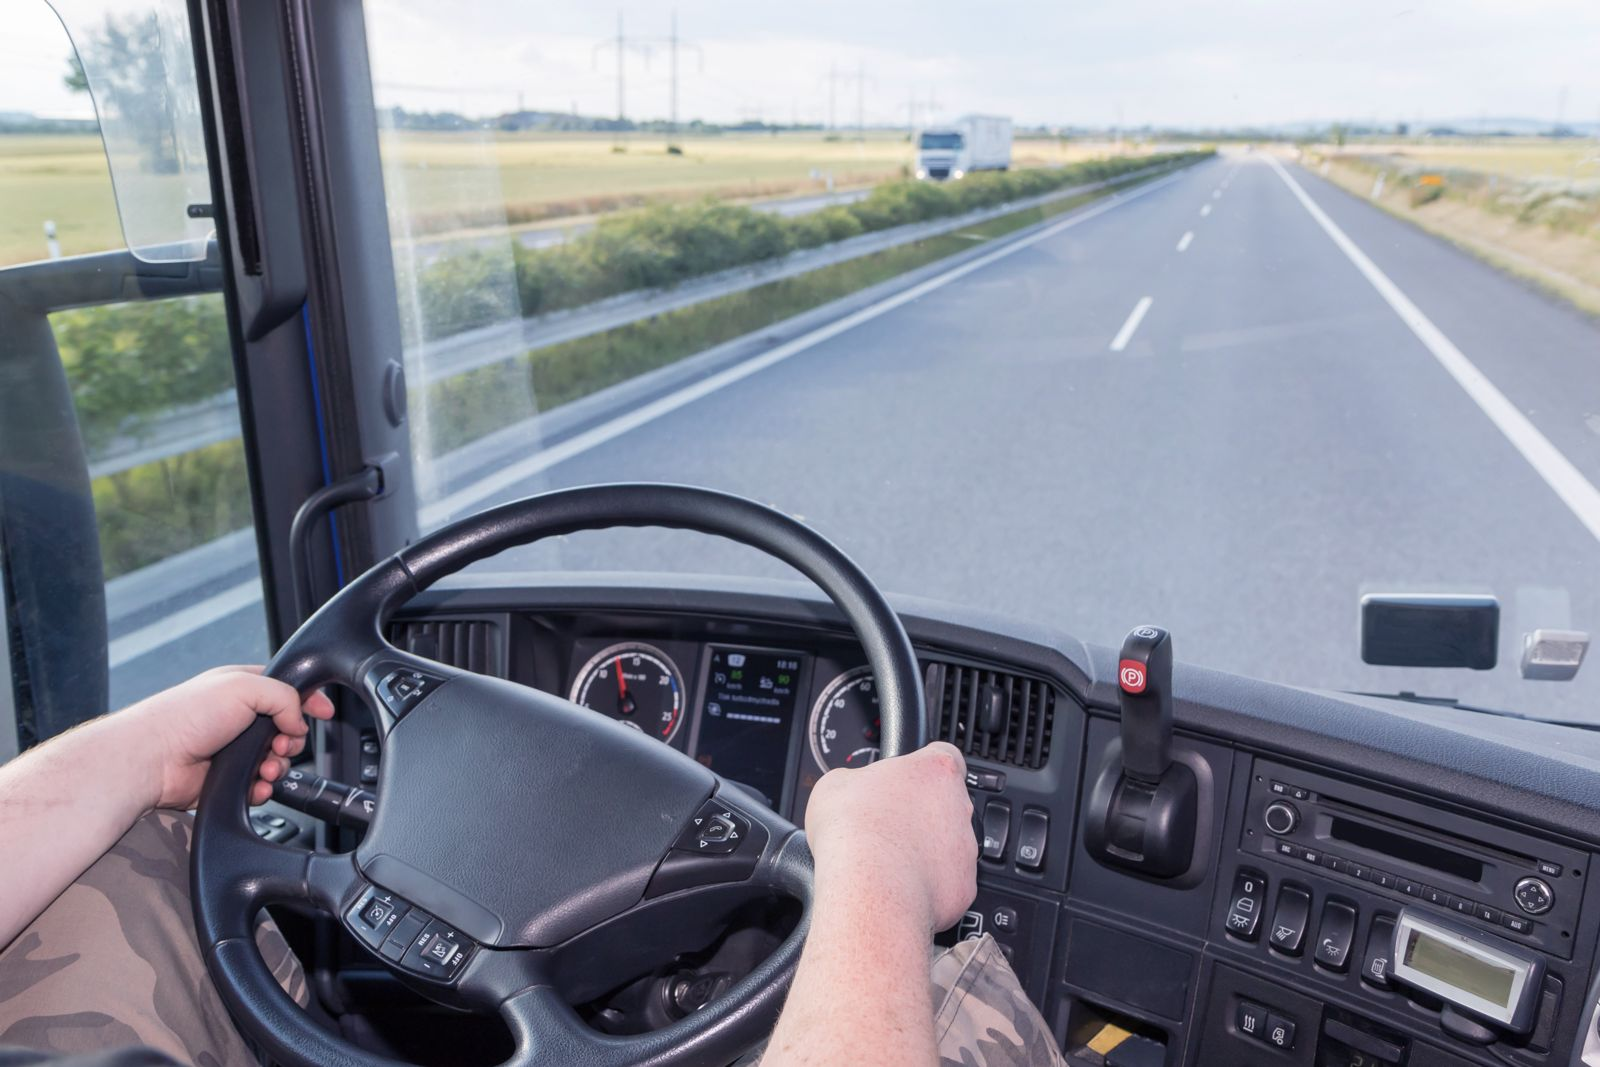 A poorly trained truck driver can cause accident.